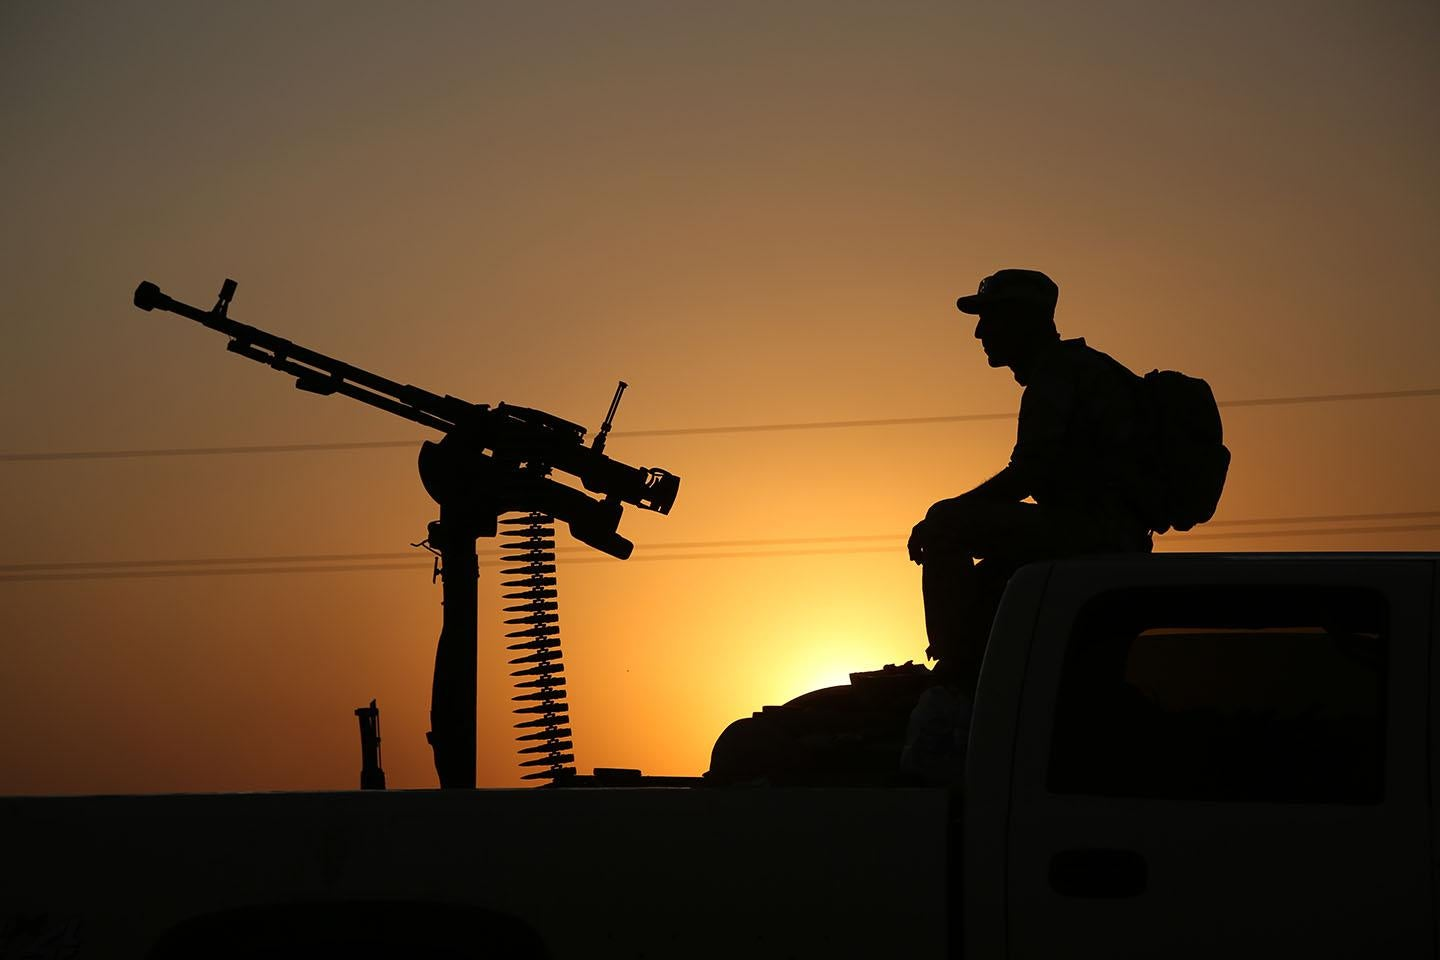 A member of Syrian People's Protection Units (YPG) near Mosul, Iraq on August 6, 2014.